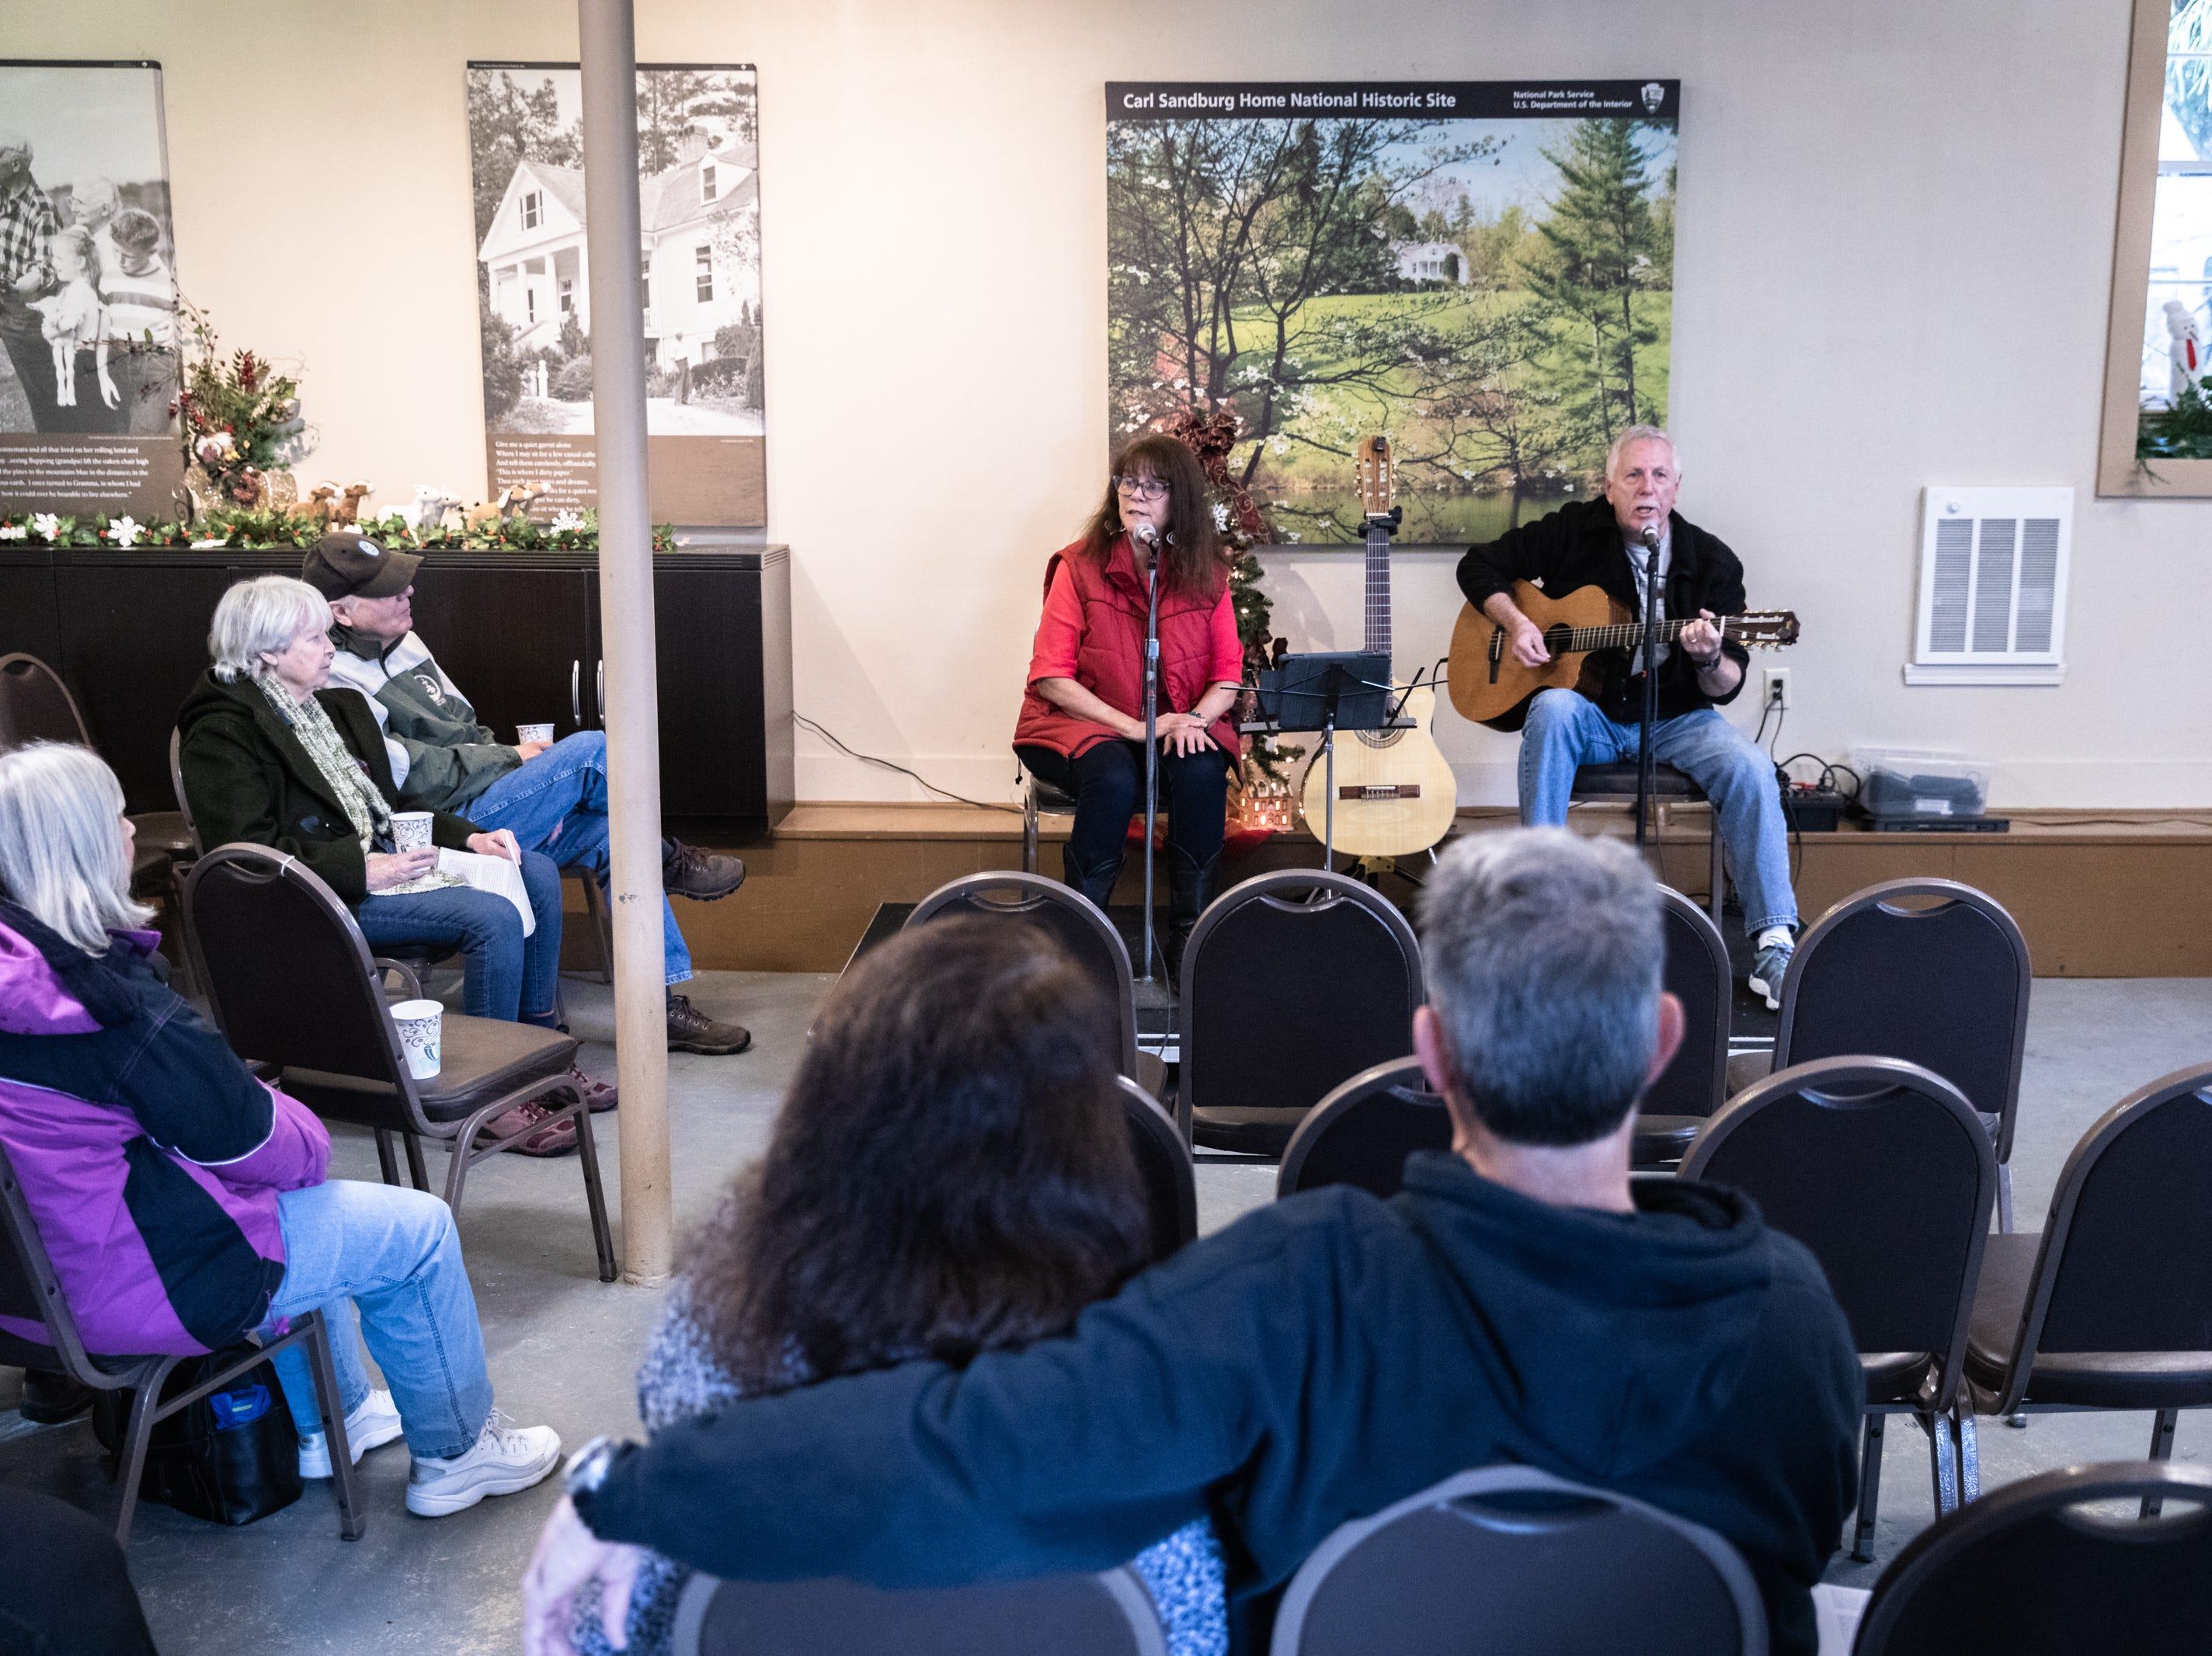 Jean Satz and her husband Alan Satz, who go by the name Geriatric Jukebox, perform songs at the Carl Sandburg home in Flat Rock where the park celebrated its 50th anniversary Nov. 24, 2018, with their Christmas at Connemara event featuring live music, storytellers and tours of the home.